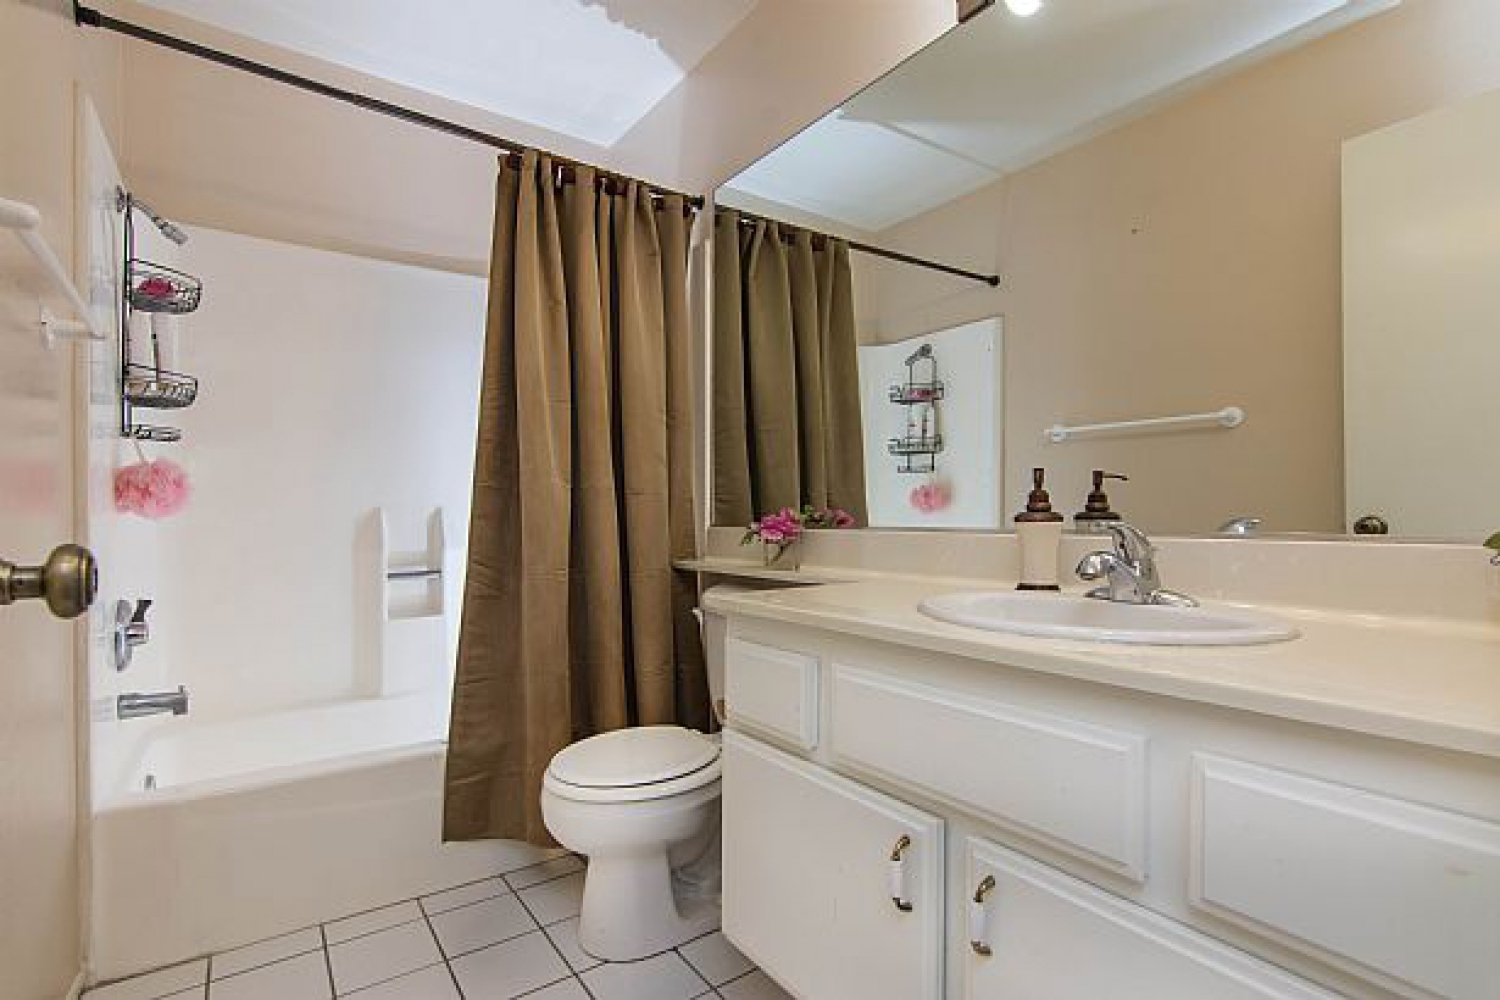 25610 Alicante Dr | Photo 2